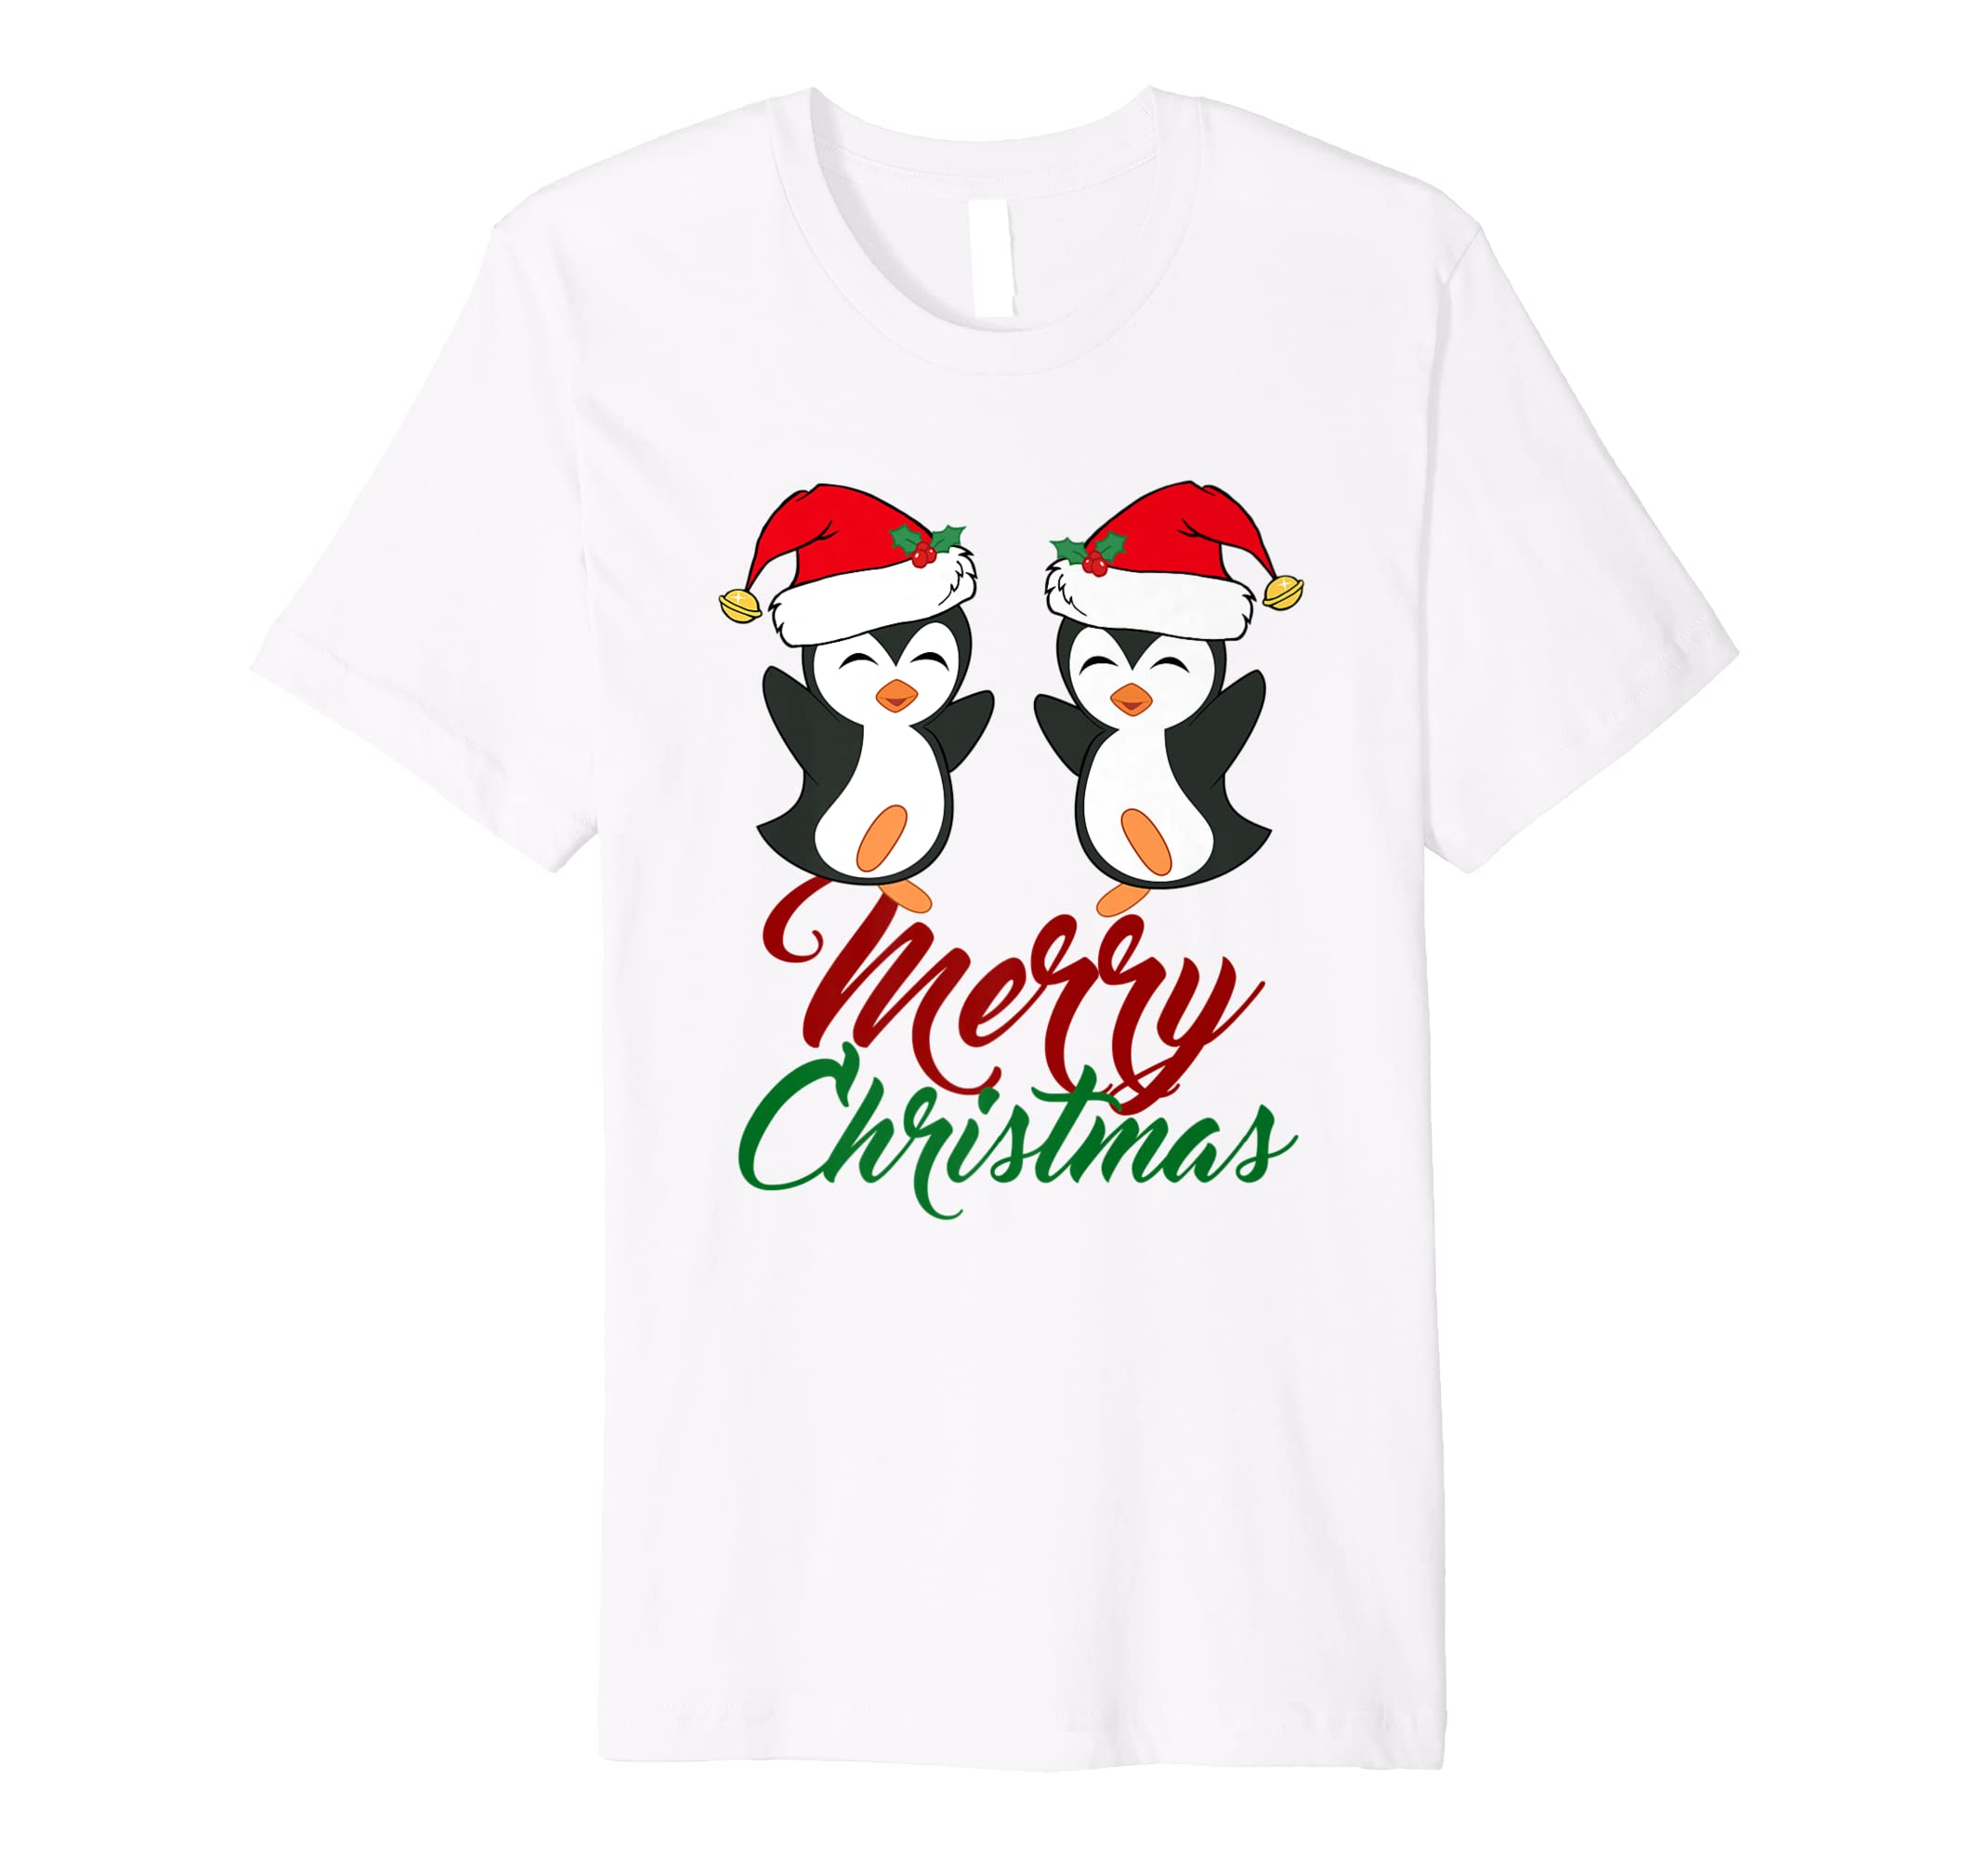 f1fcc7482a228 Merry Christmas Penguins T-Shirt - Cute Penguin Gift at Amazon Men s  Clothing store